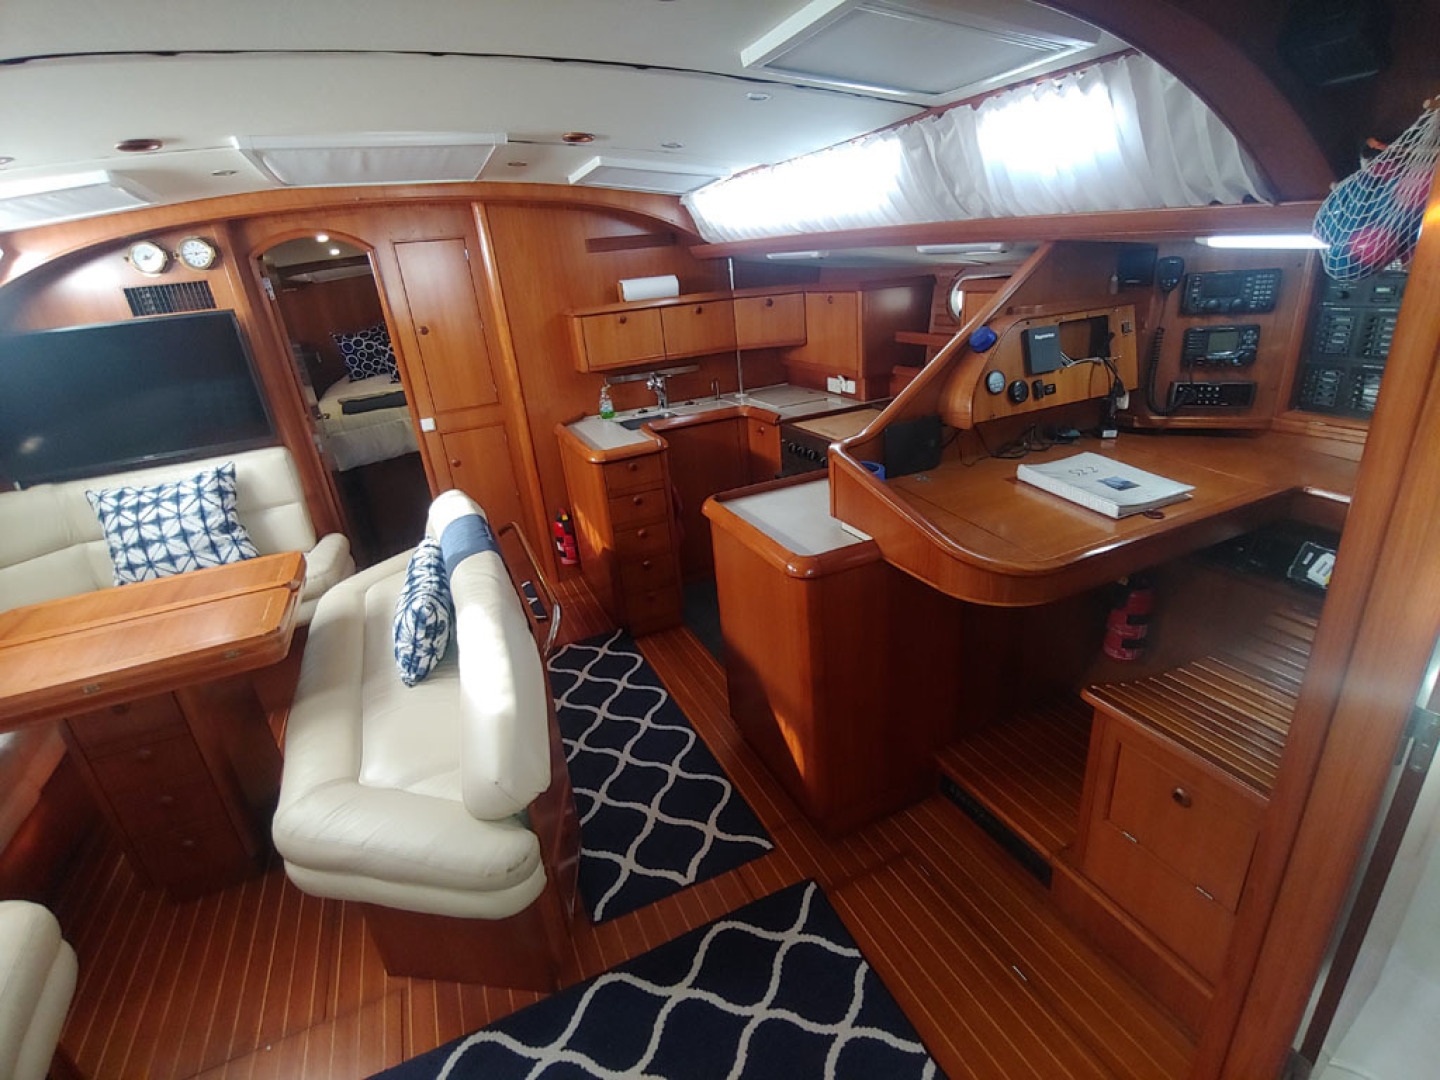 Jeanneau-Sun Odyssey 52.2 2001-Perseverance Hollywood-Florida-United States-Cabin Interior  Starboard-1640970 | Thumbnail